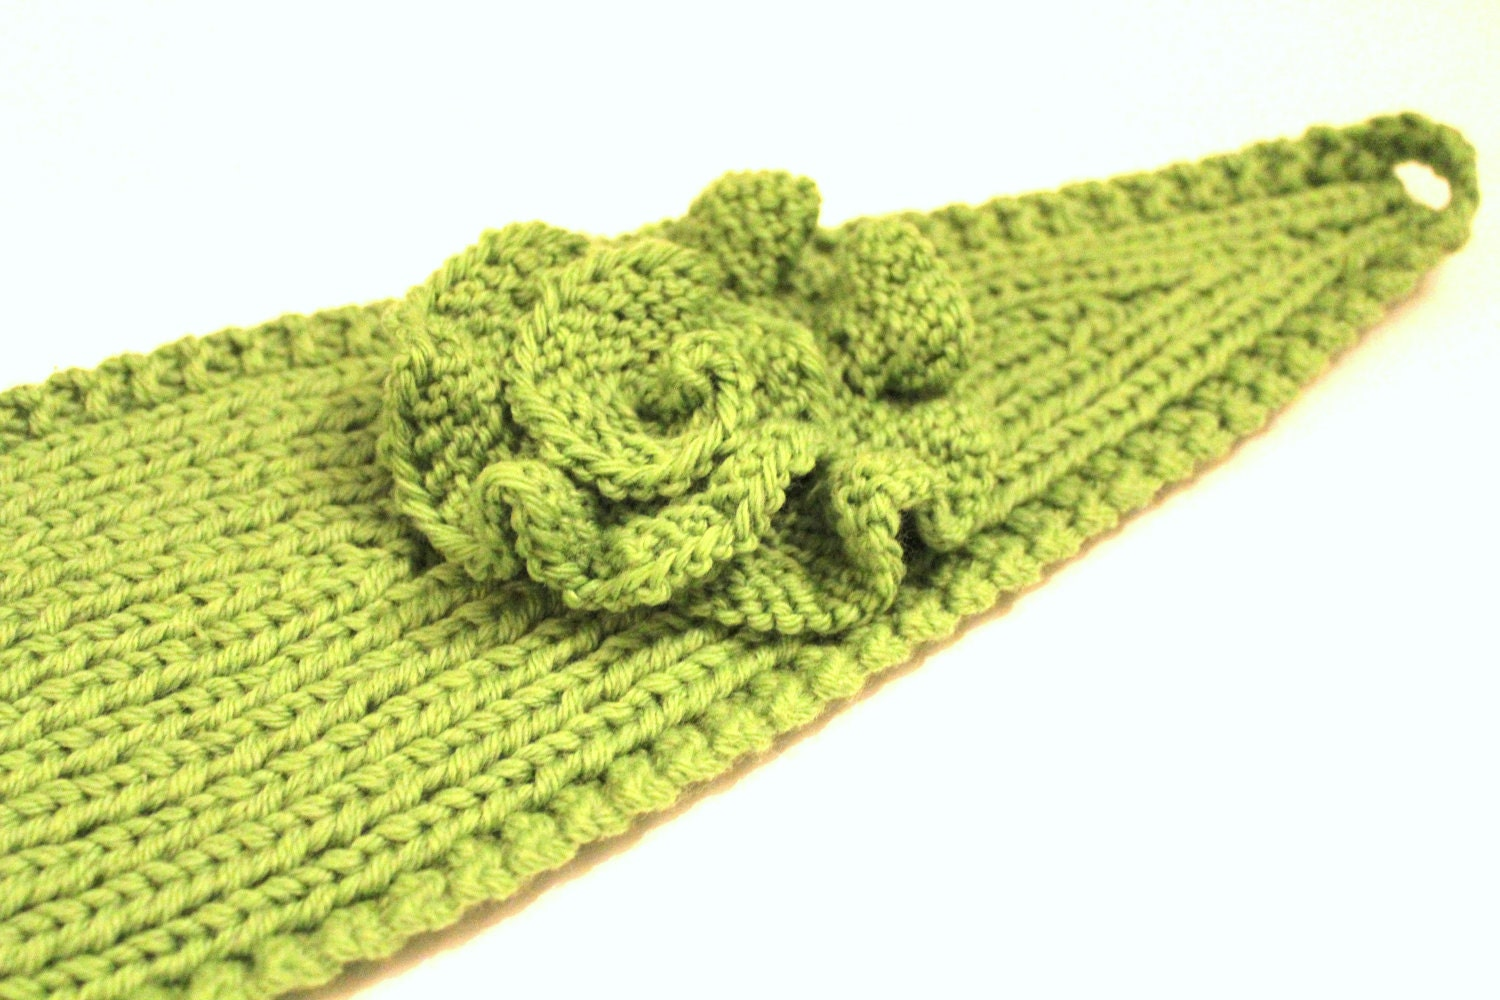 Knit Headband Pattern With Button : KNITTING PATTERN Knitting Pattern Headband with Crochet Or